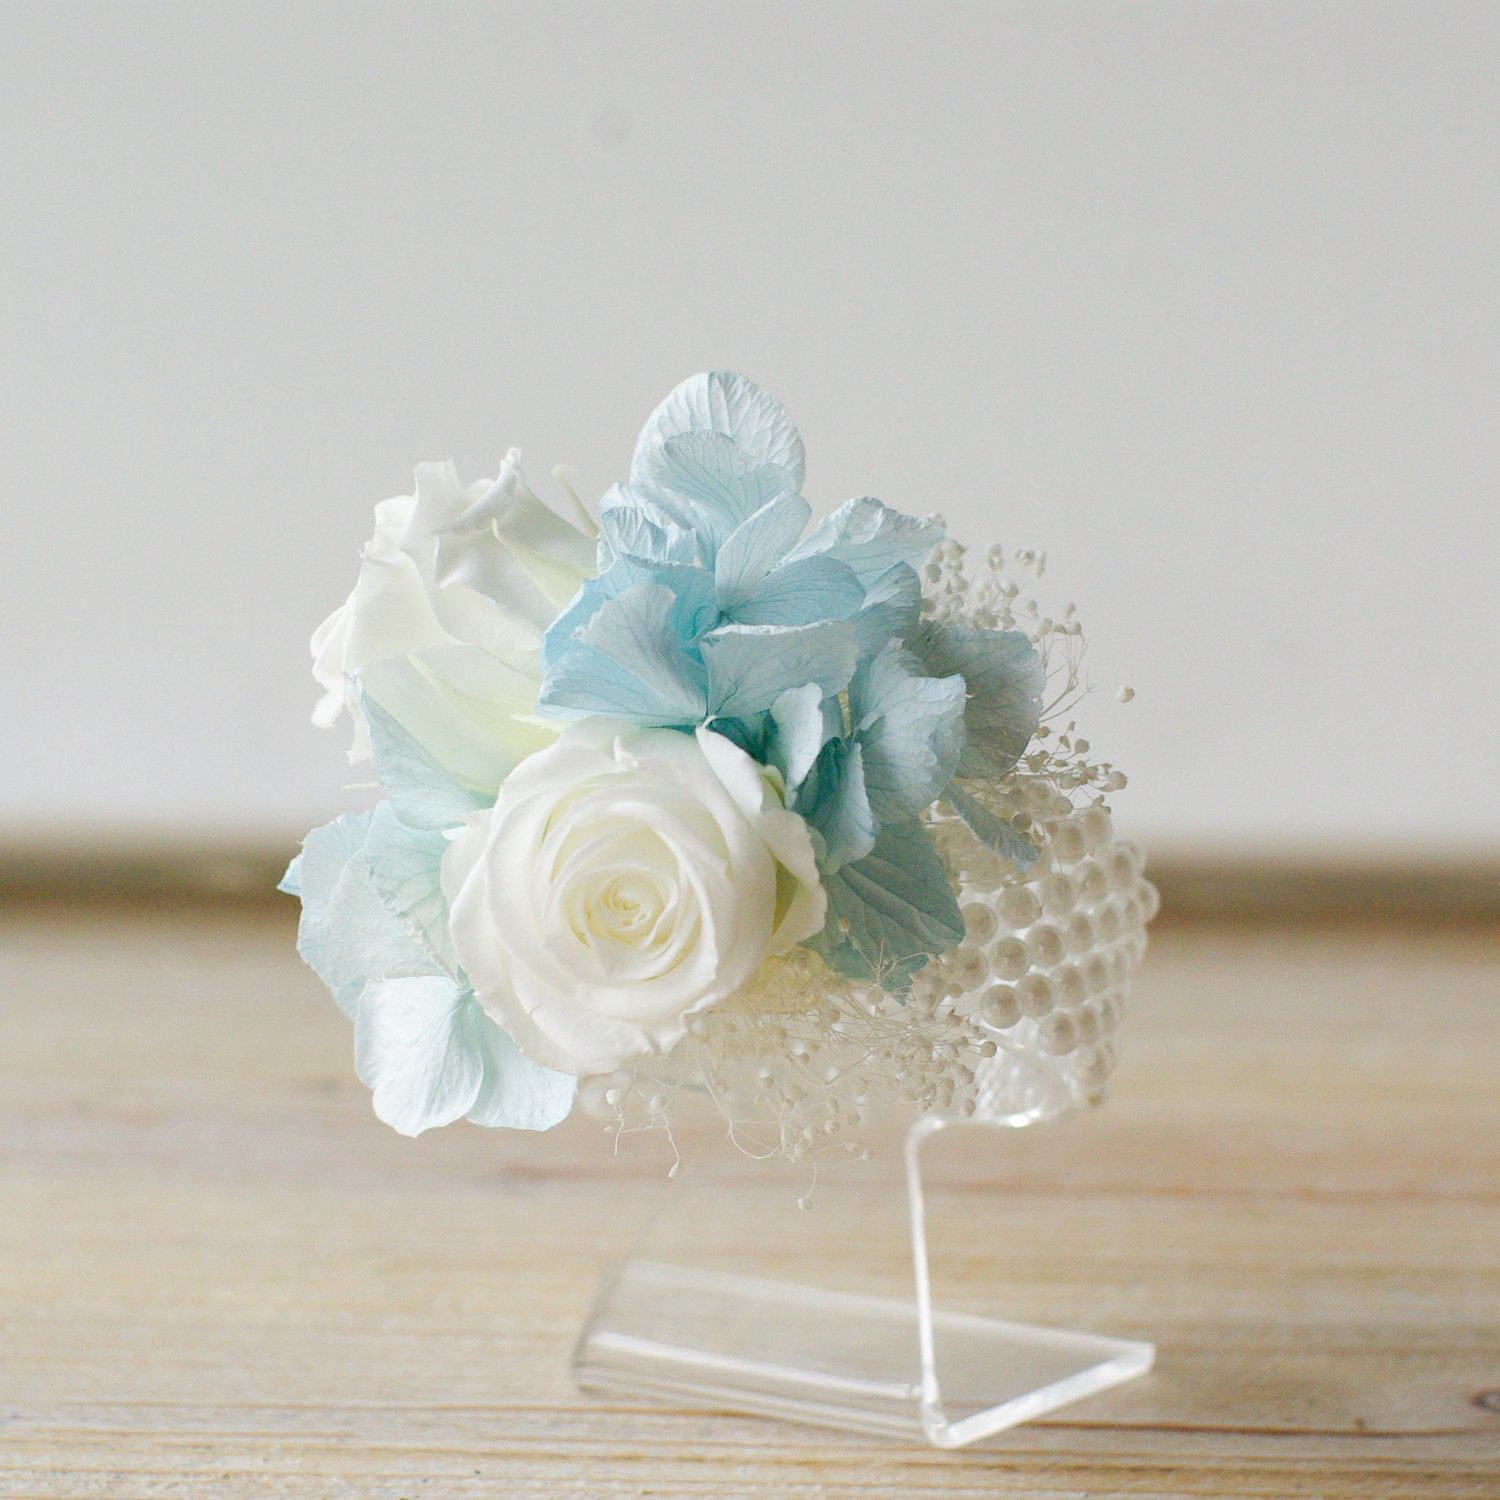 Corsage, Light Blue, White Roses, Pin On Corsage, Wrist Corsage, Preserved  Dried Flowers, Flowers To Wear, Womenu0027s Flowers, Momu0027s Flowers, ... Gallery